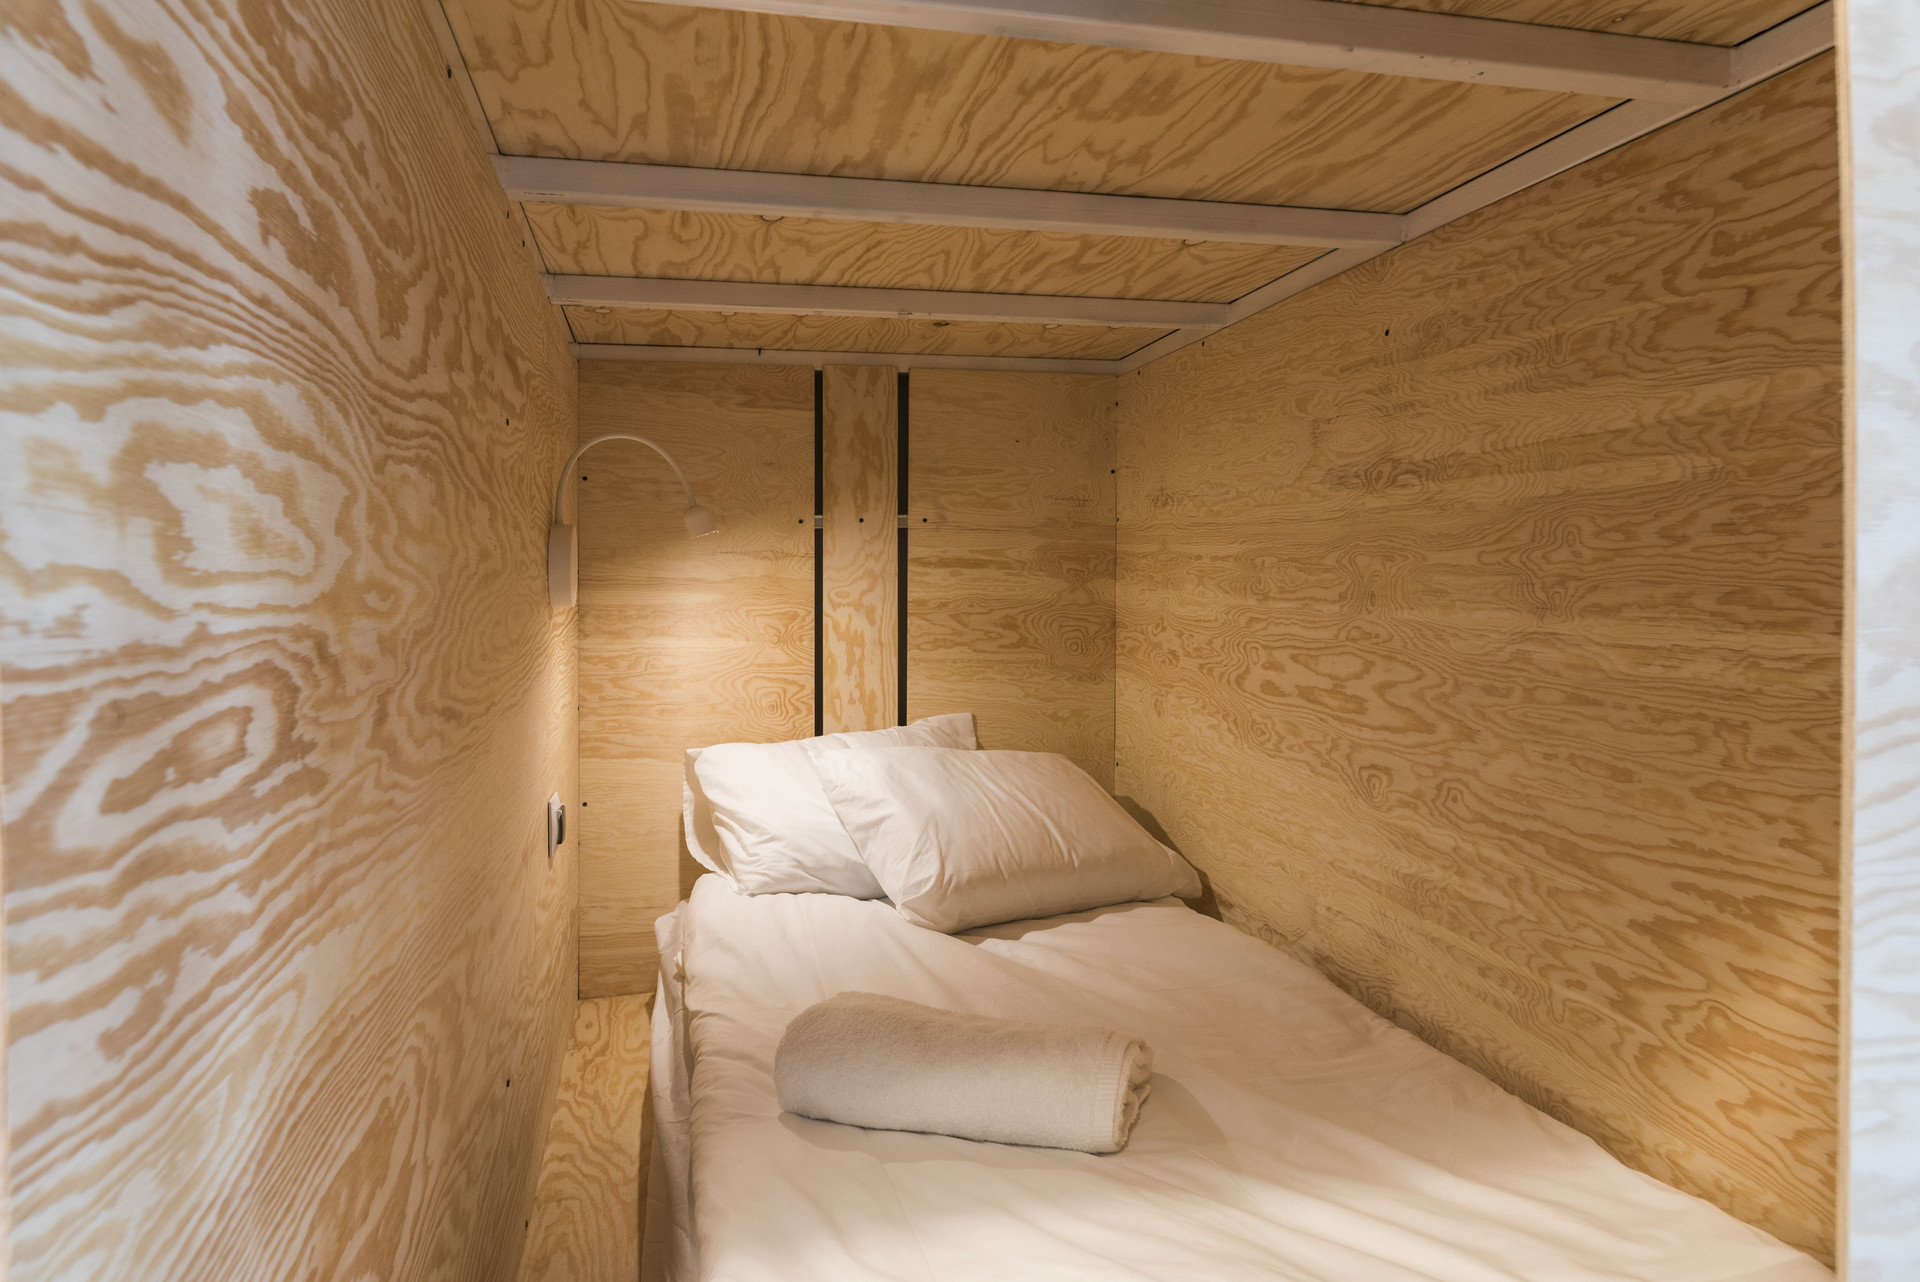 A Twin Bunk Bed Is A Spacious Room Containing Comfortable Bunk Beds Room For Rent Gdansk